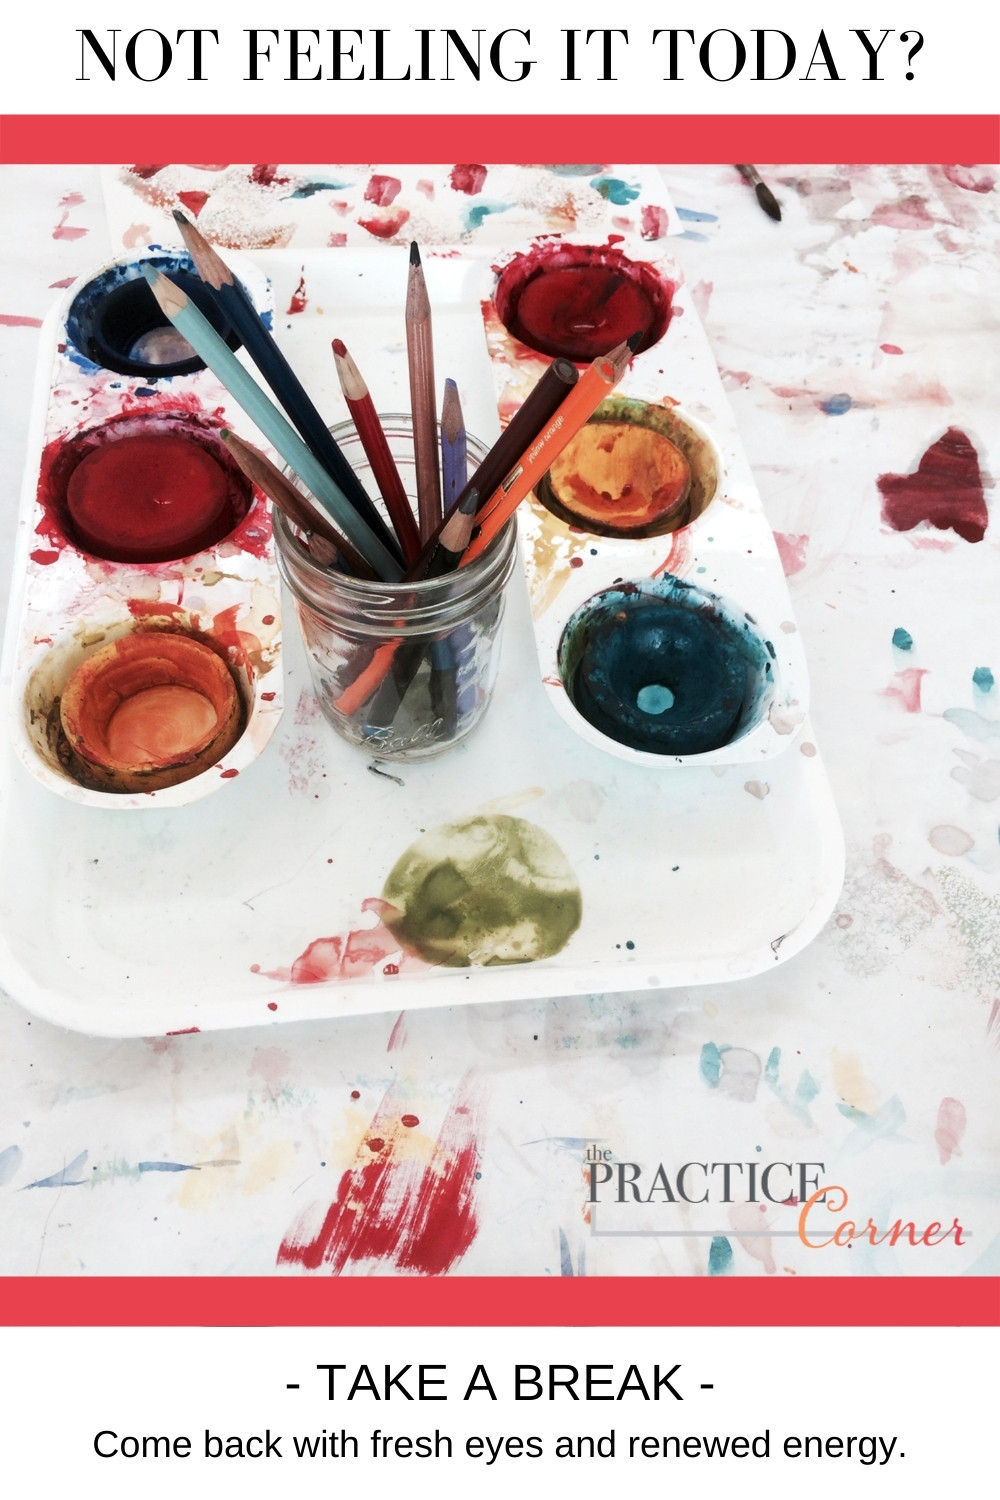 Take a break from creating art.  Come back with fresh eyes and energy | The Practice Corner |